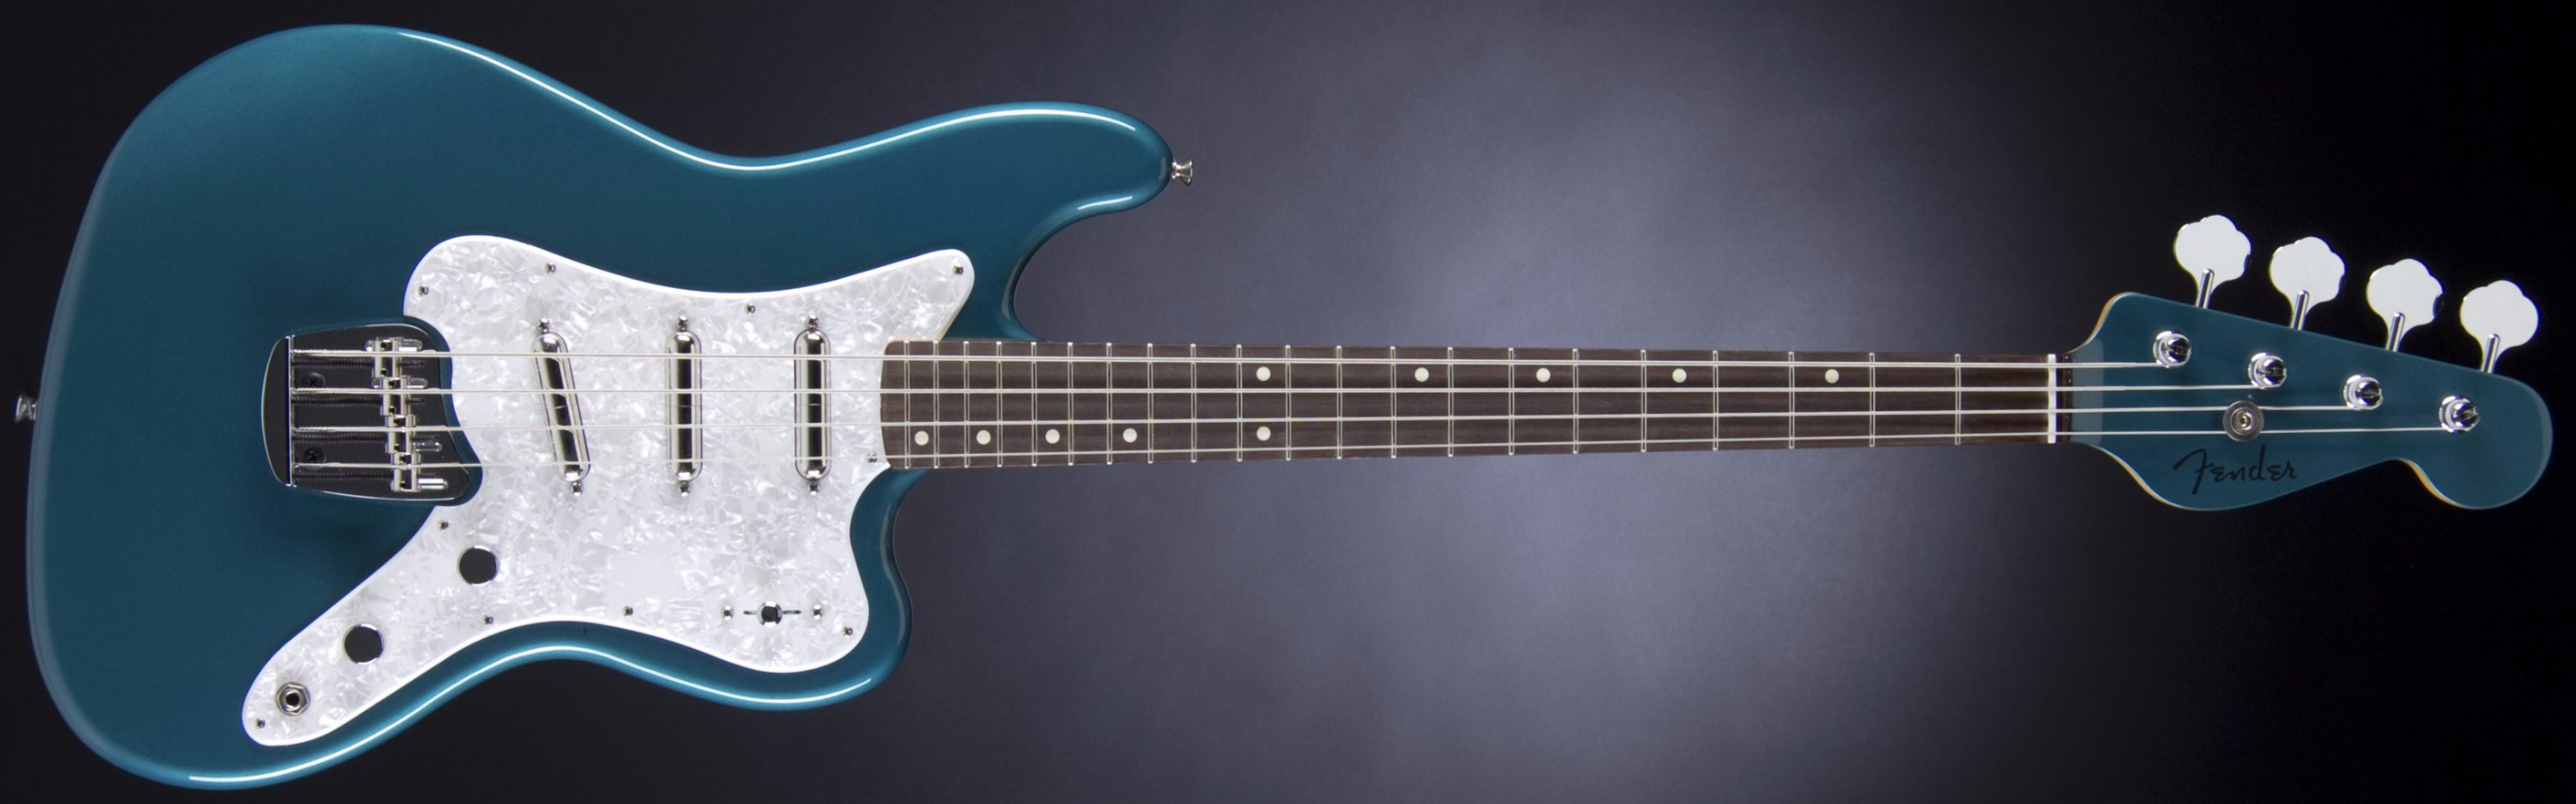 FENDER Classic Player Rascal Bass Ocean Turquoise